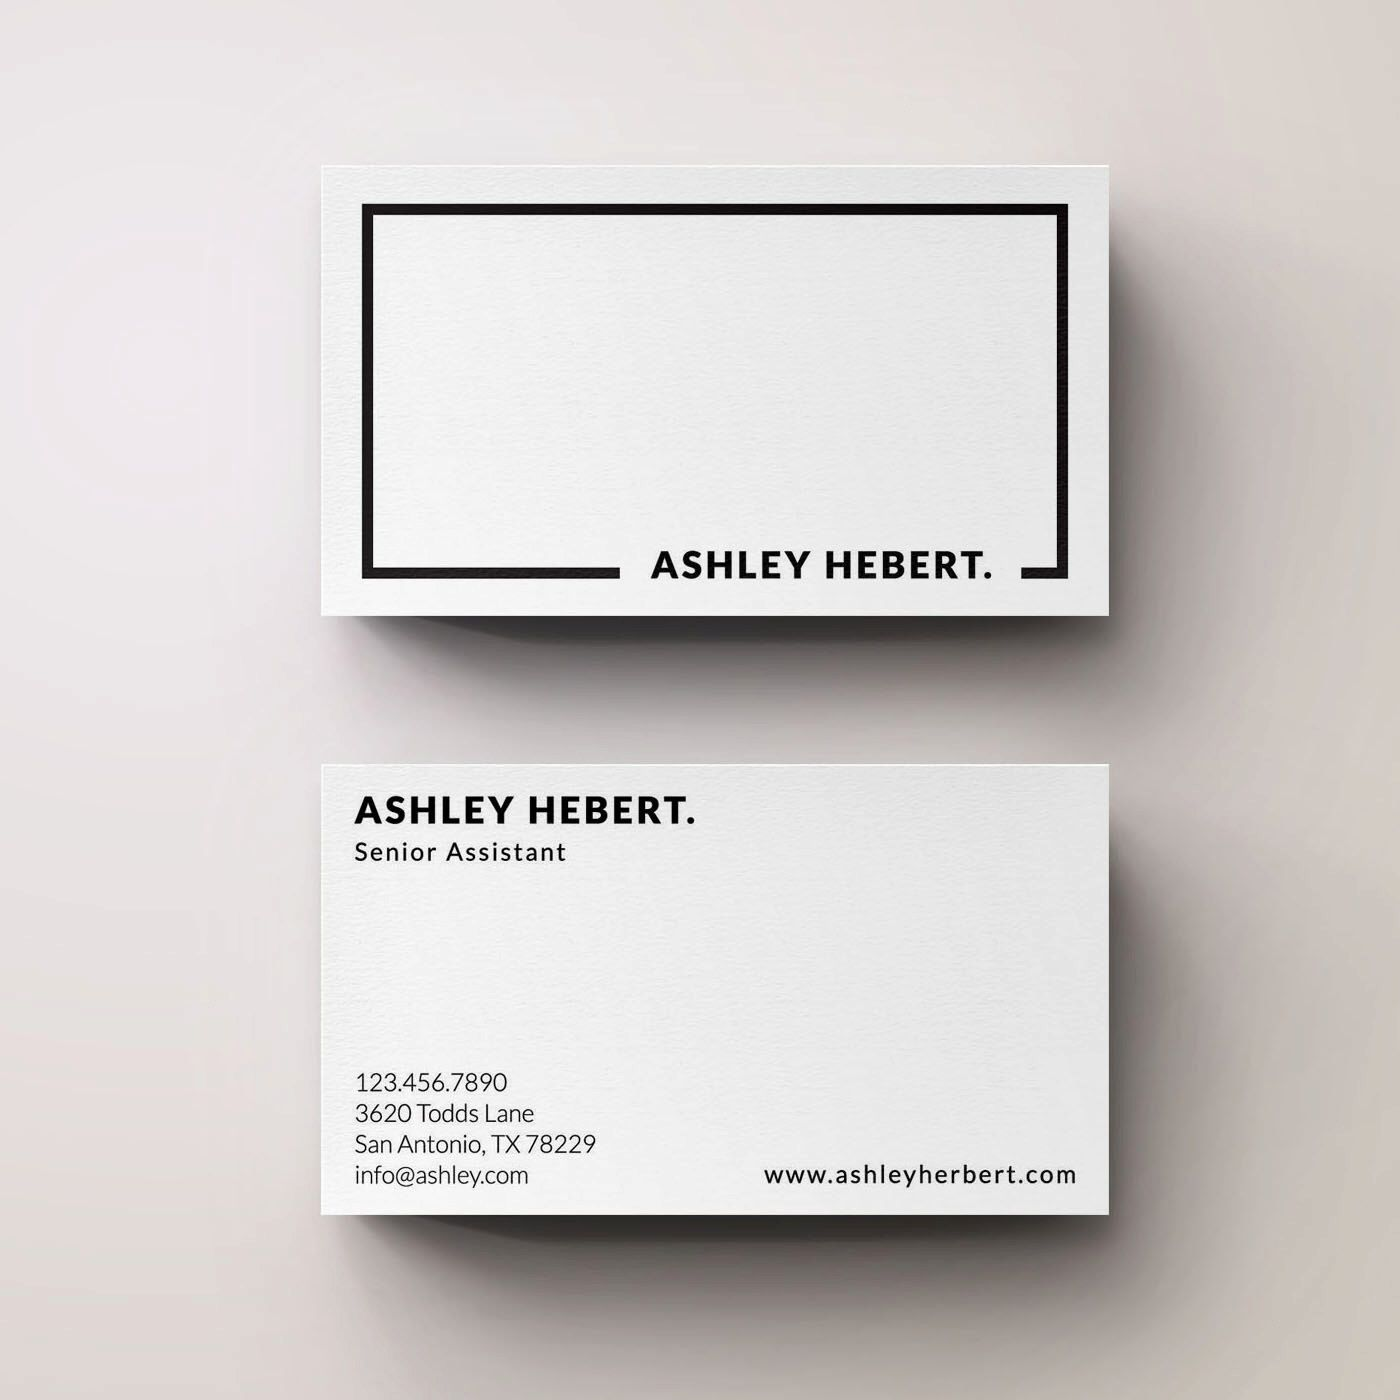 Premade Business Card Template Small Business Card Photography Business Card C Business Card Design Simple Graphic Design Business Card Business Card Design